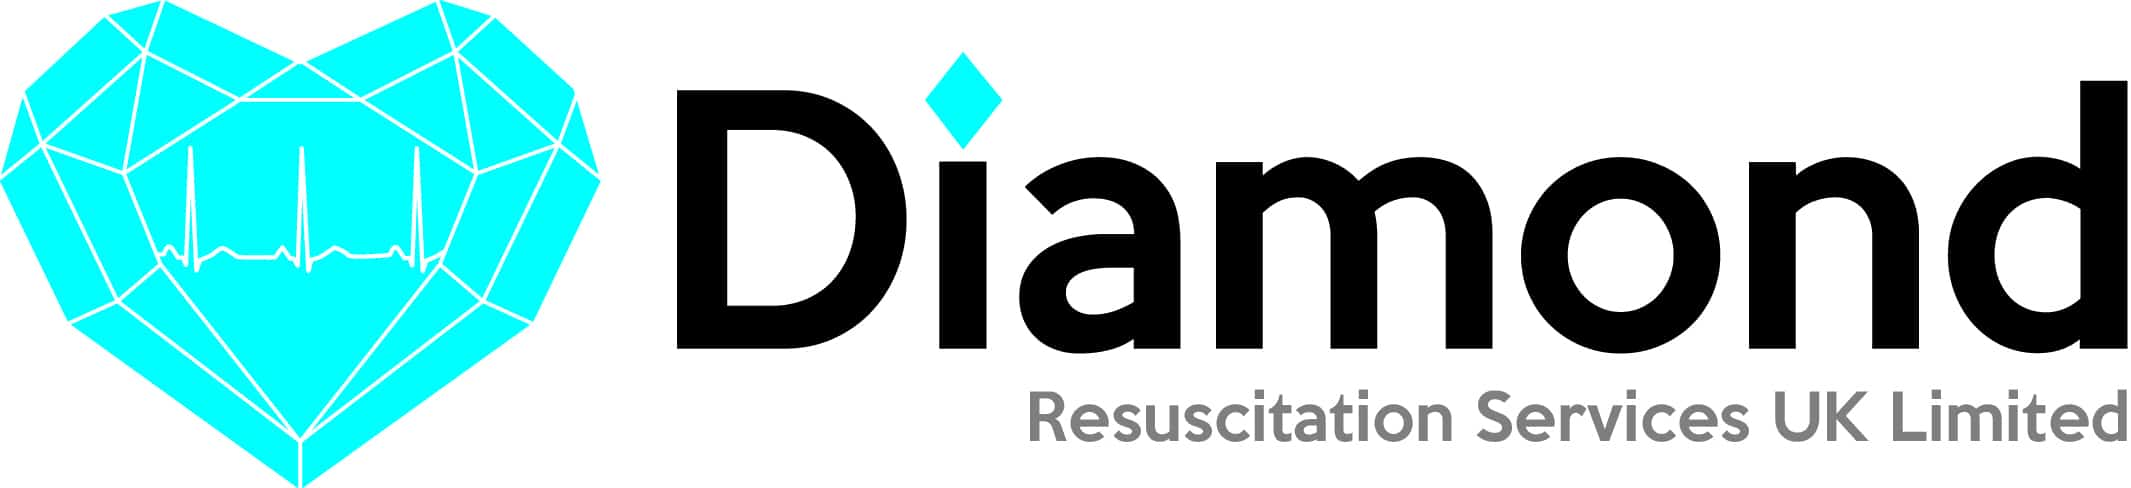 Diamond Resuscitation Services UK